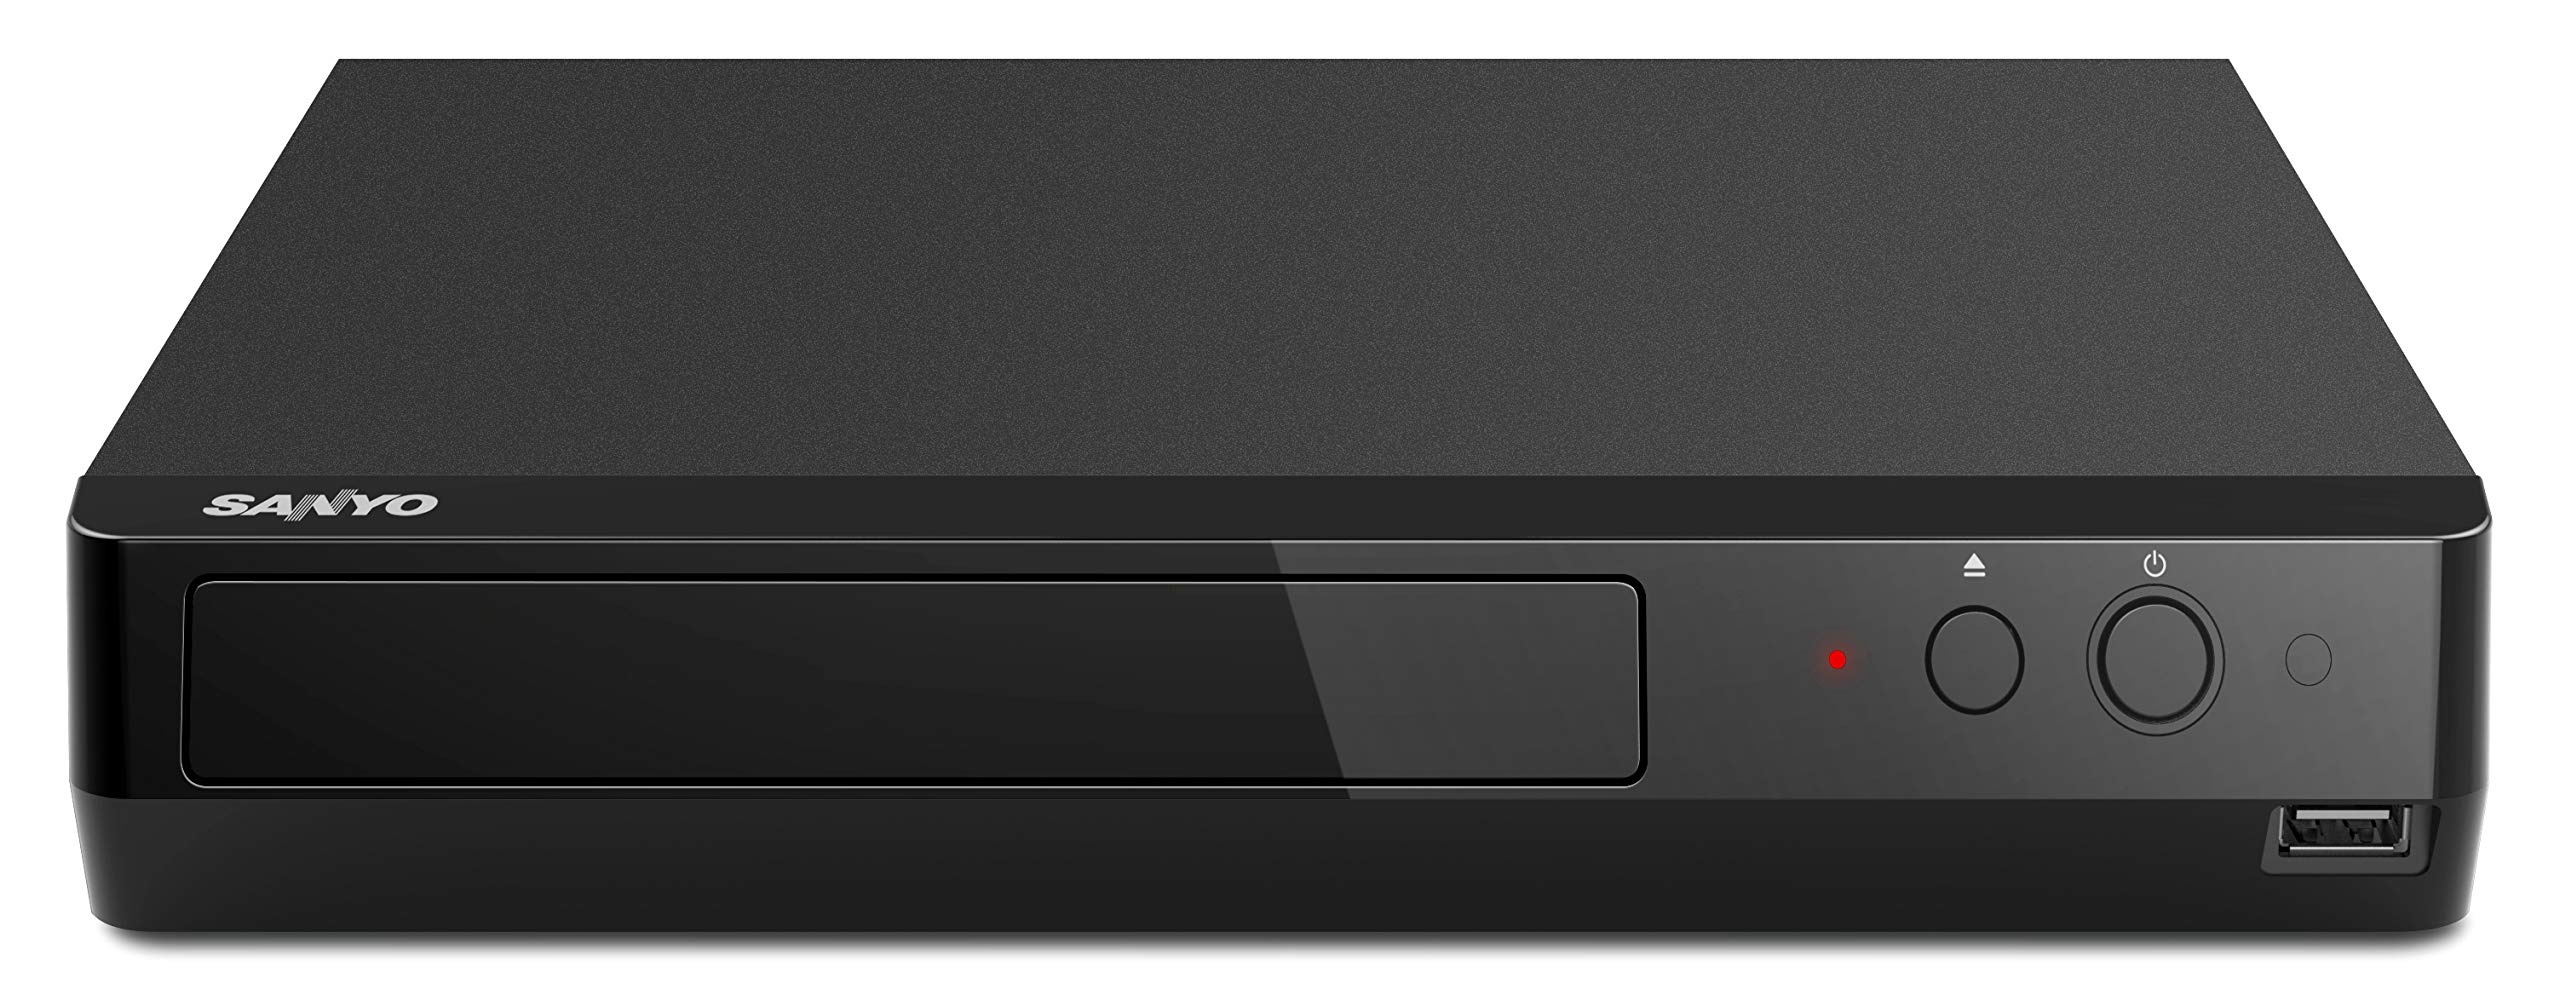 Sanyo 4K Ultra HD Blu-ray Player (Certified Renewed) by SANYO